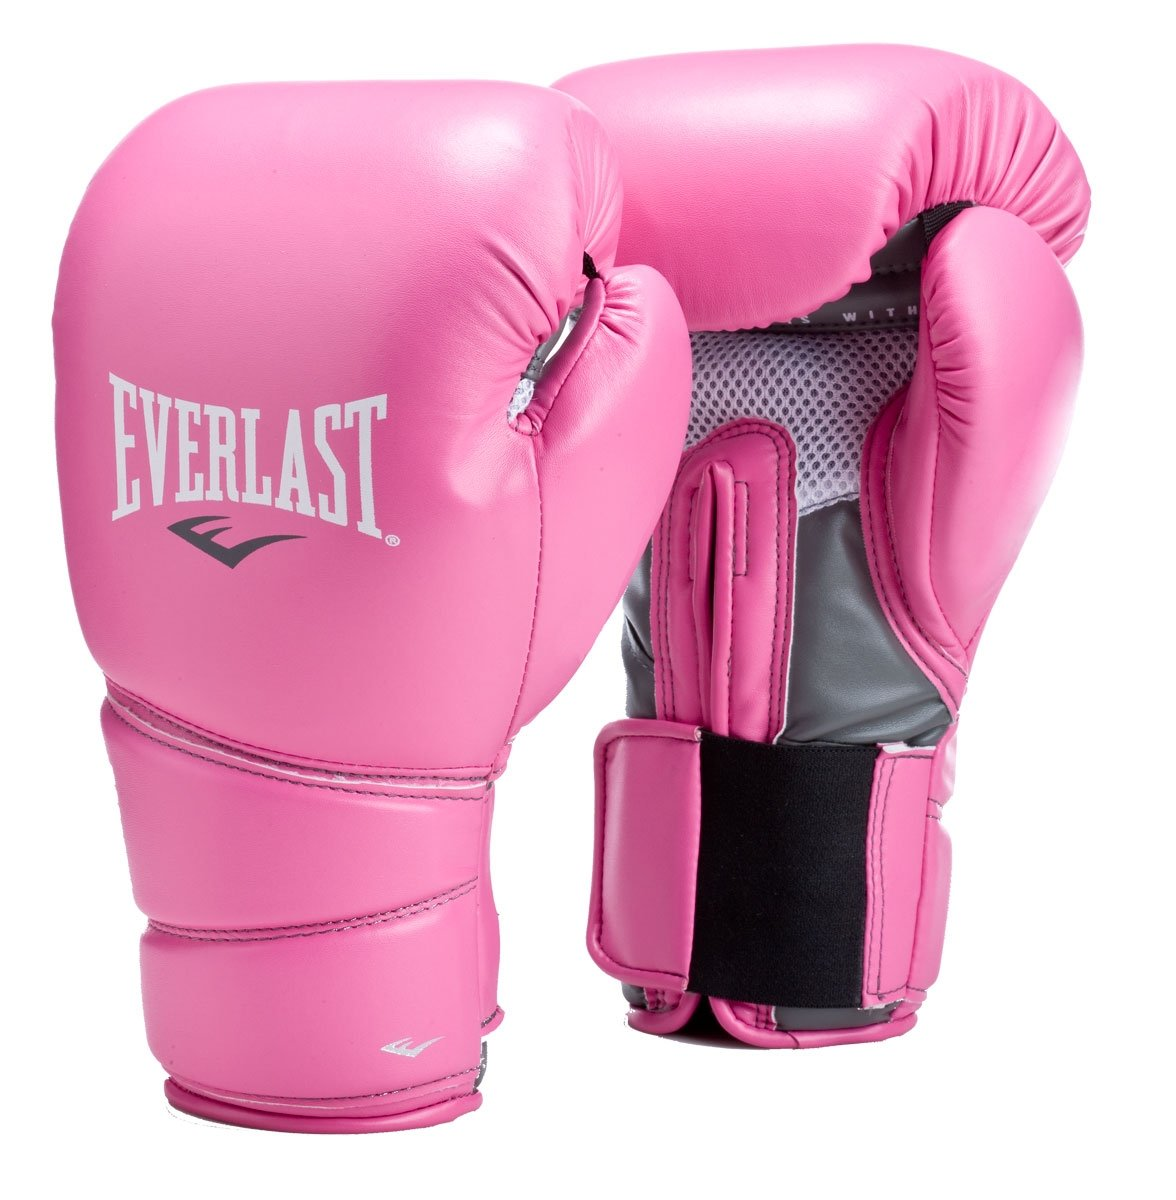 Top 10 boxing gloves for women